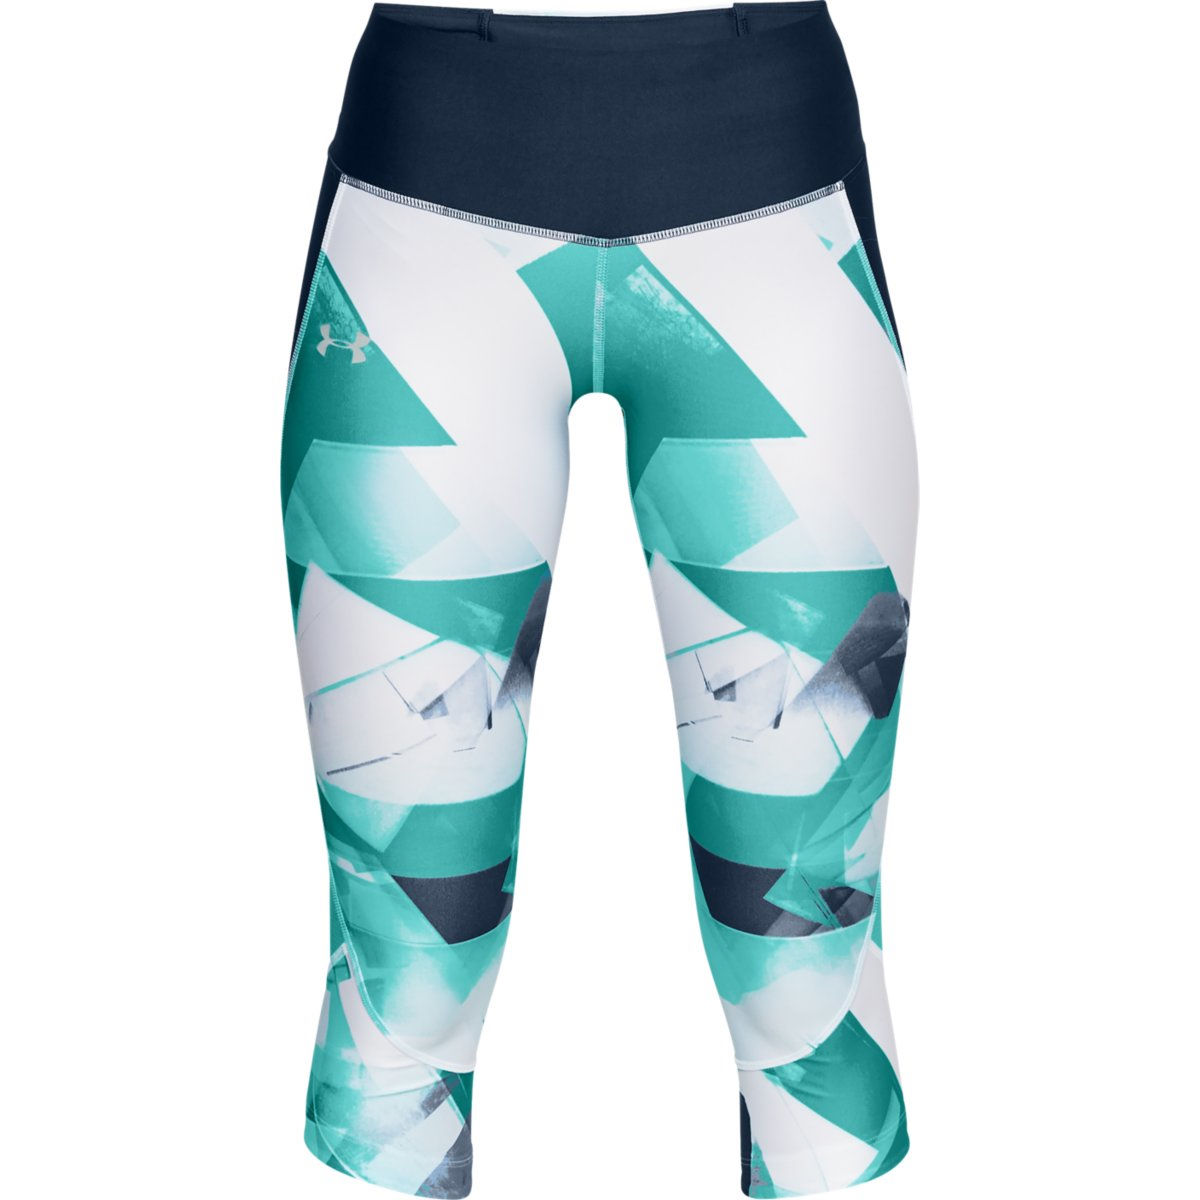 Image of Corsaire Femme Under Armour Superfast Printed Run - XS Academy